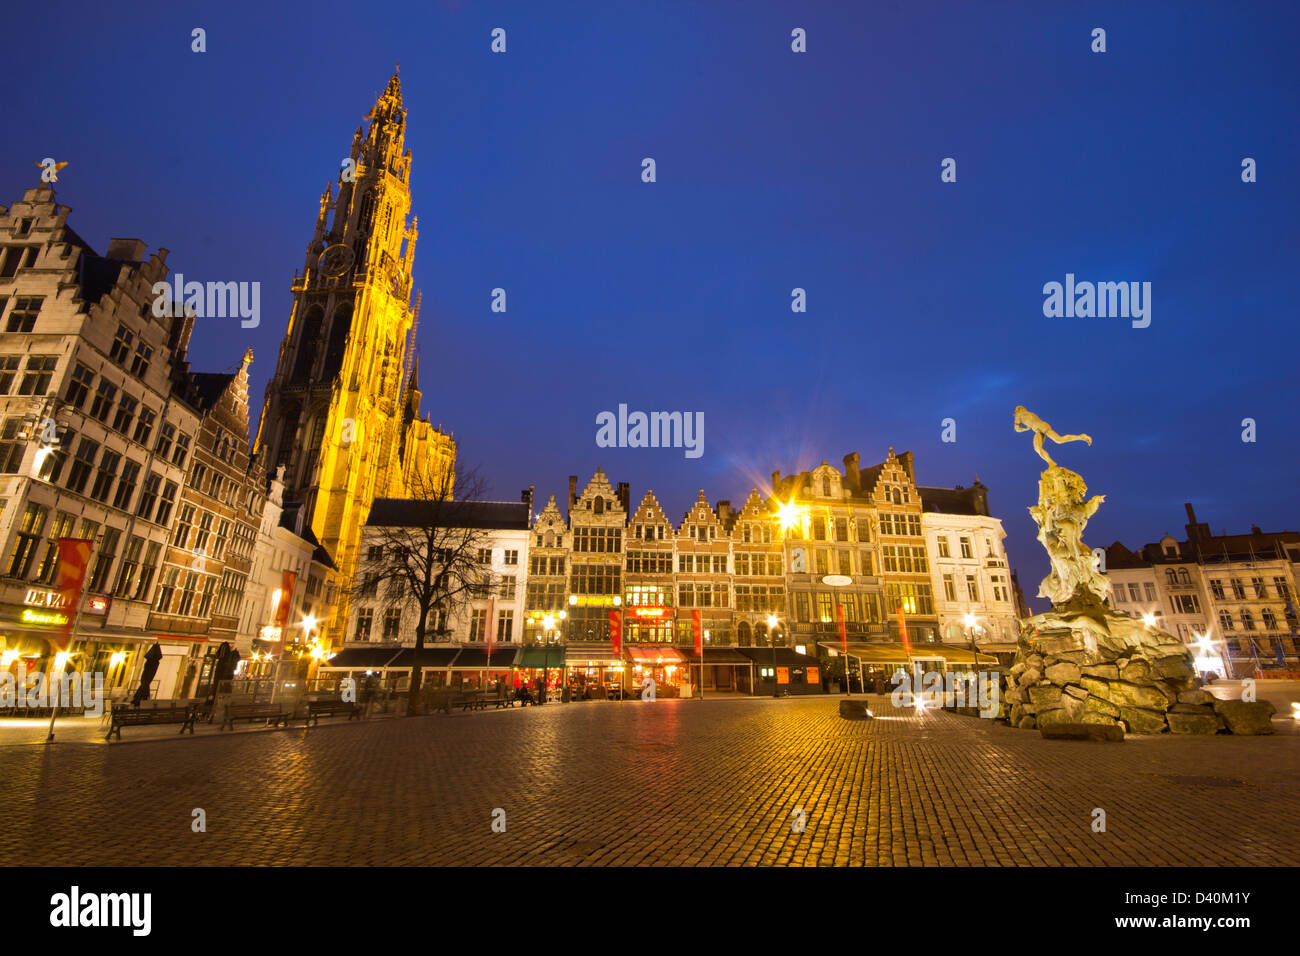 Antwerp by night with the Cathedral of Our Lady and the statue from the Grote markt. - Stock Image